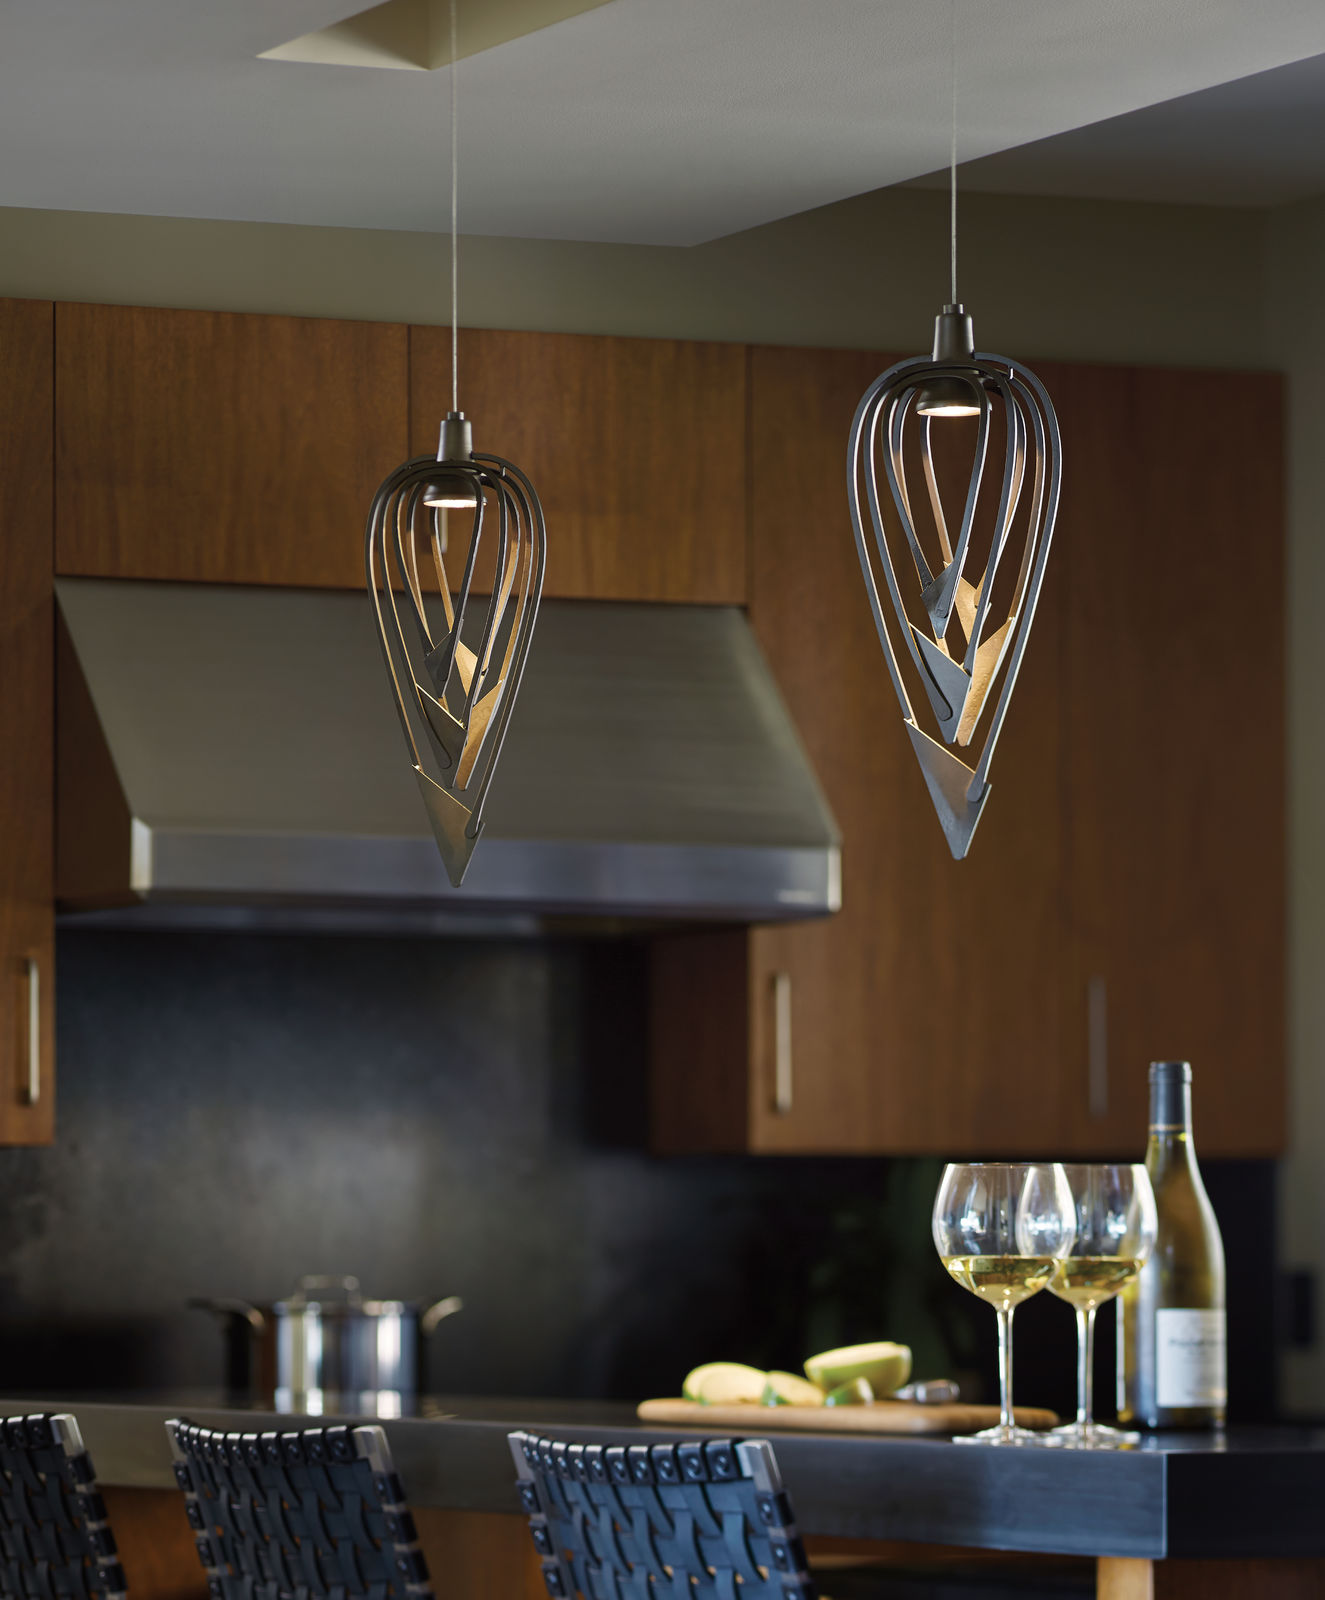 amulet low voltage mini pendant by hubbardton forge over an island in a kitchen - Hubbardton Forge